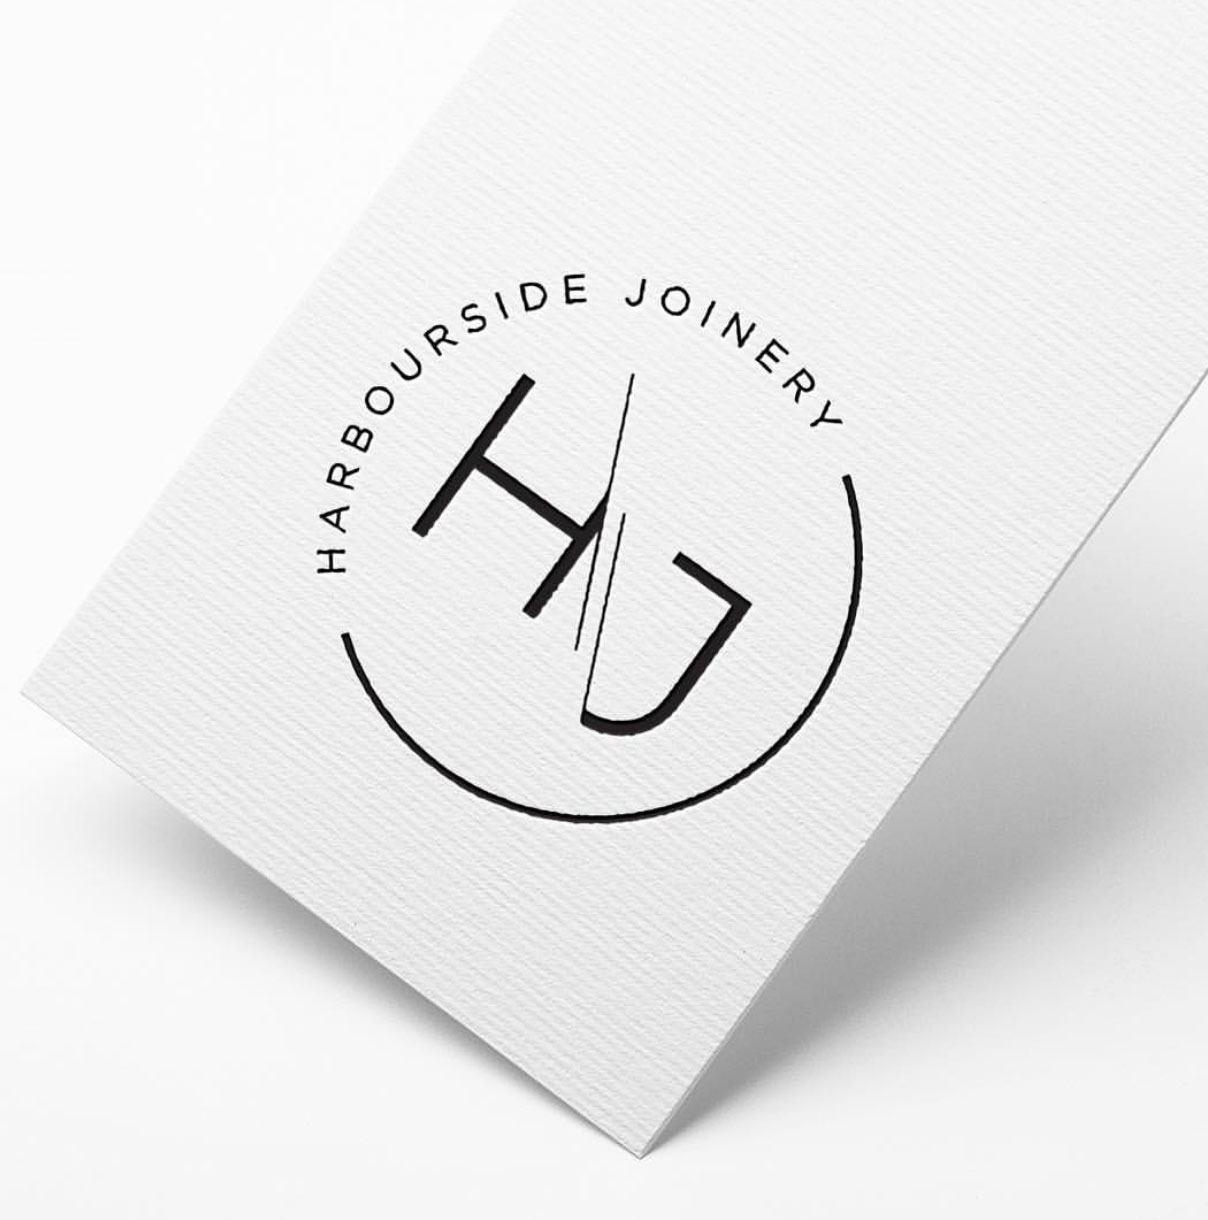 Harbourside Joinery Logo and Branding